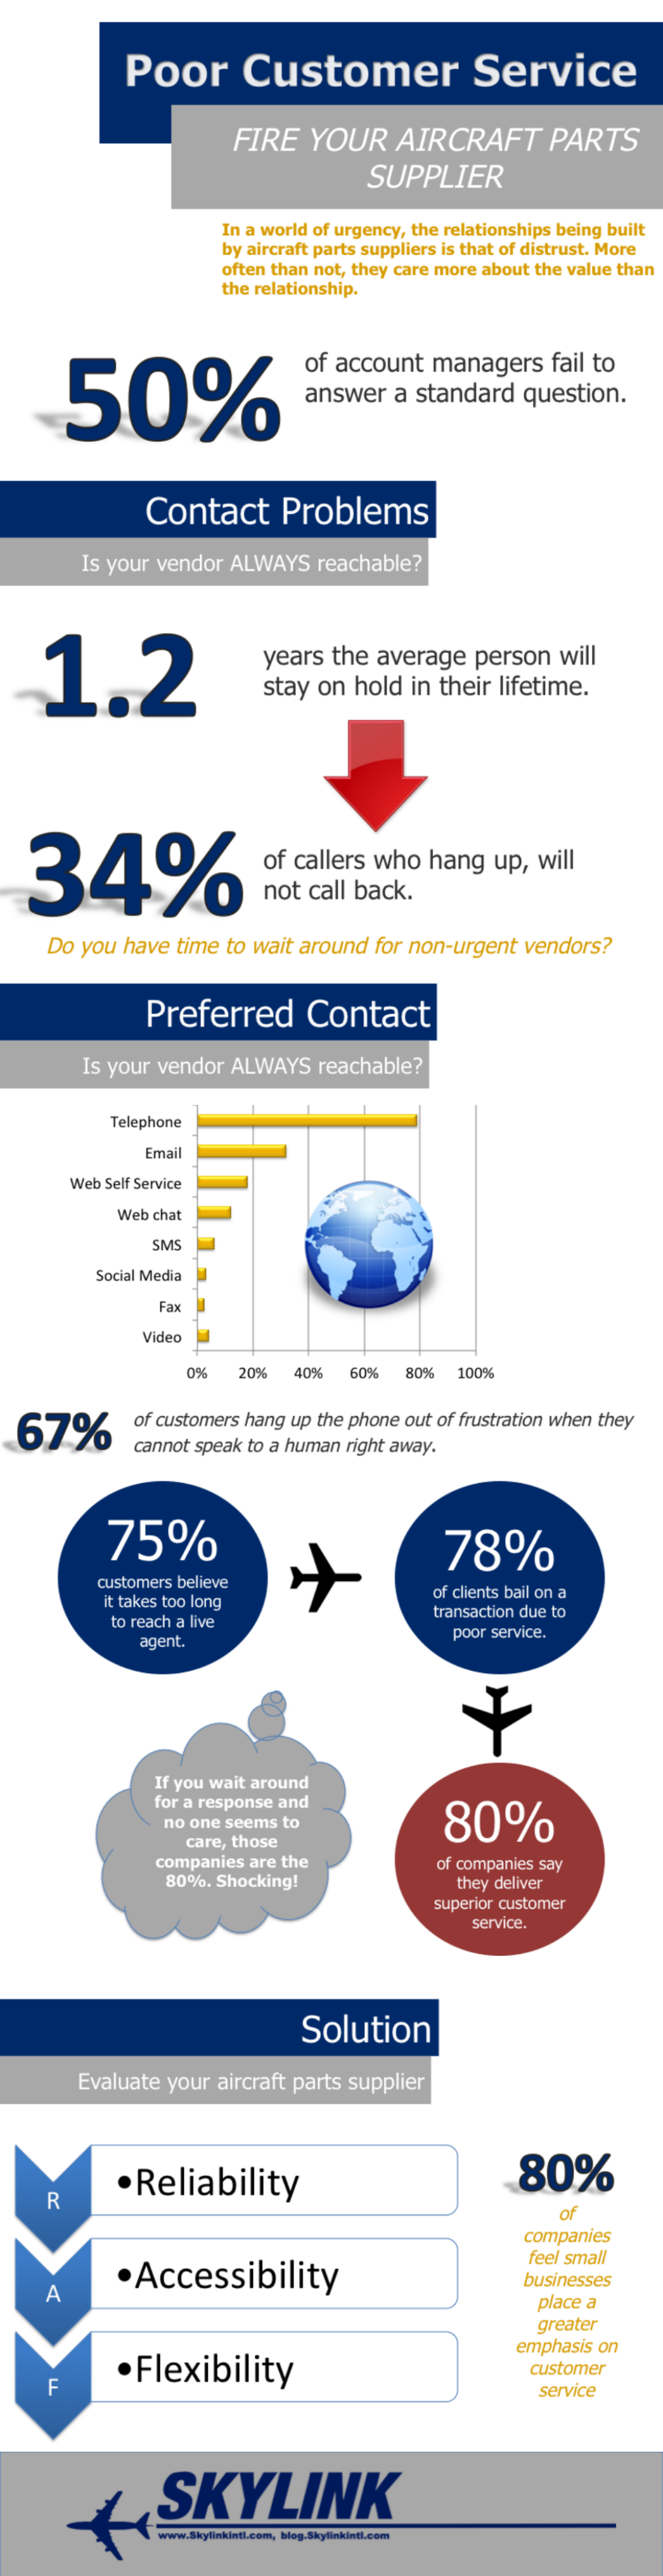 Poor Customer Service From Aircraft Parts Supplier Infographic